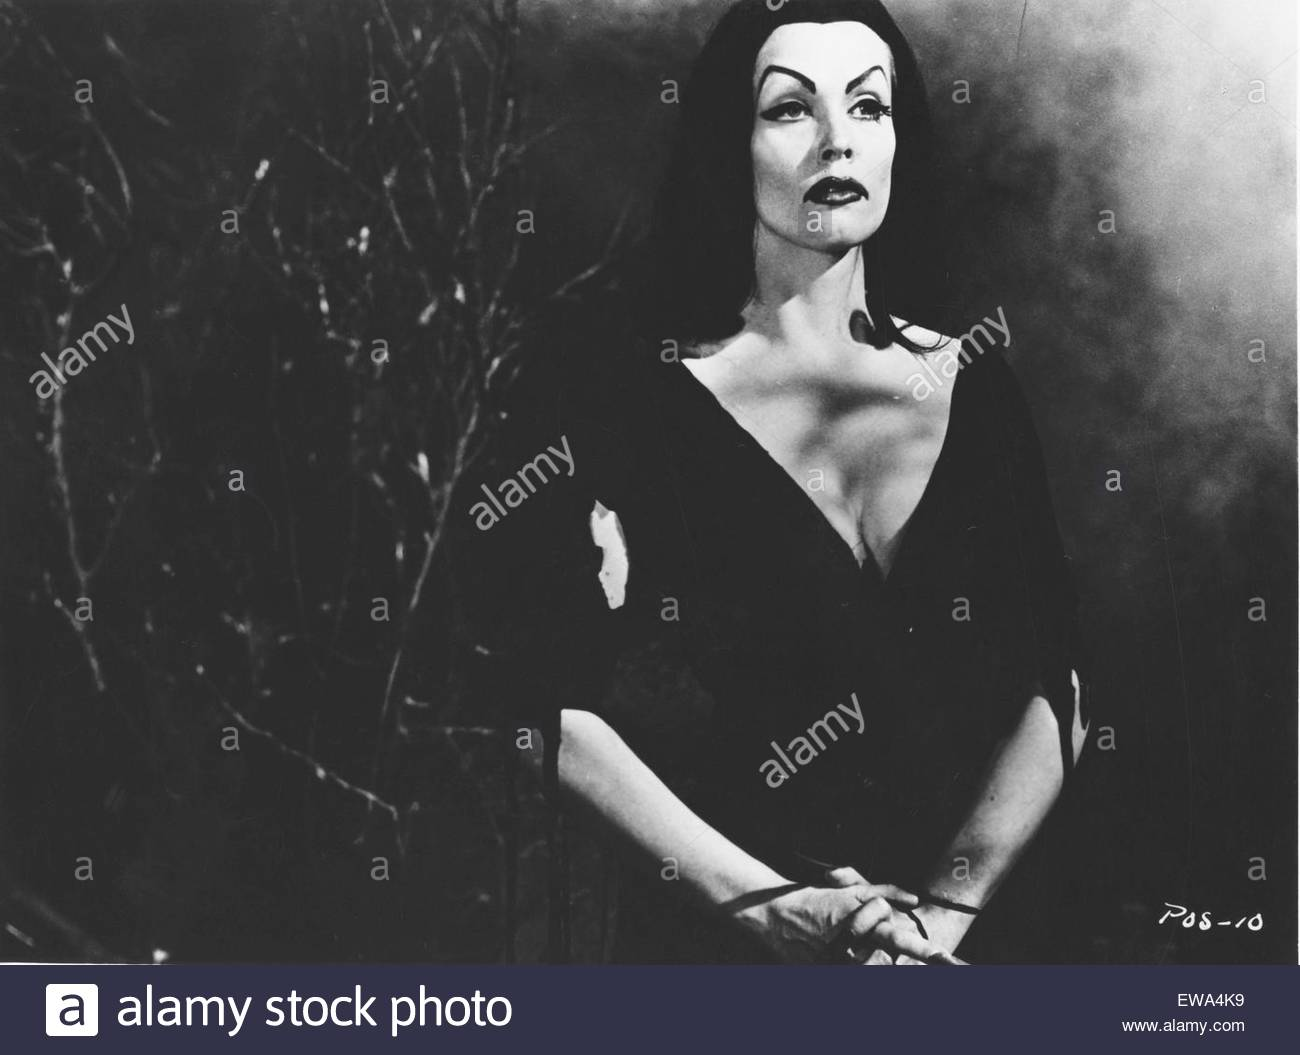 PLAN 9 FROM OUTERS SPACE (1959) - directed by Ed Wood.  Pictured:  Vampire (Maila Nurmi). Courtesy Granamour Weems - Stock Image